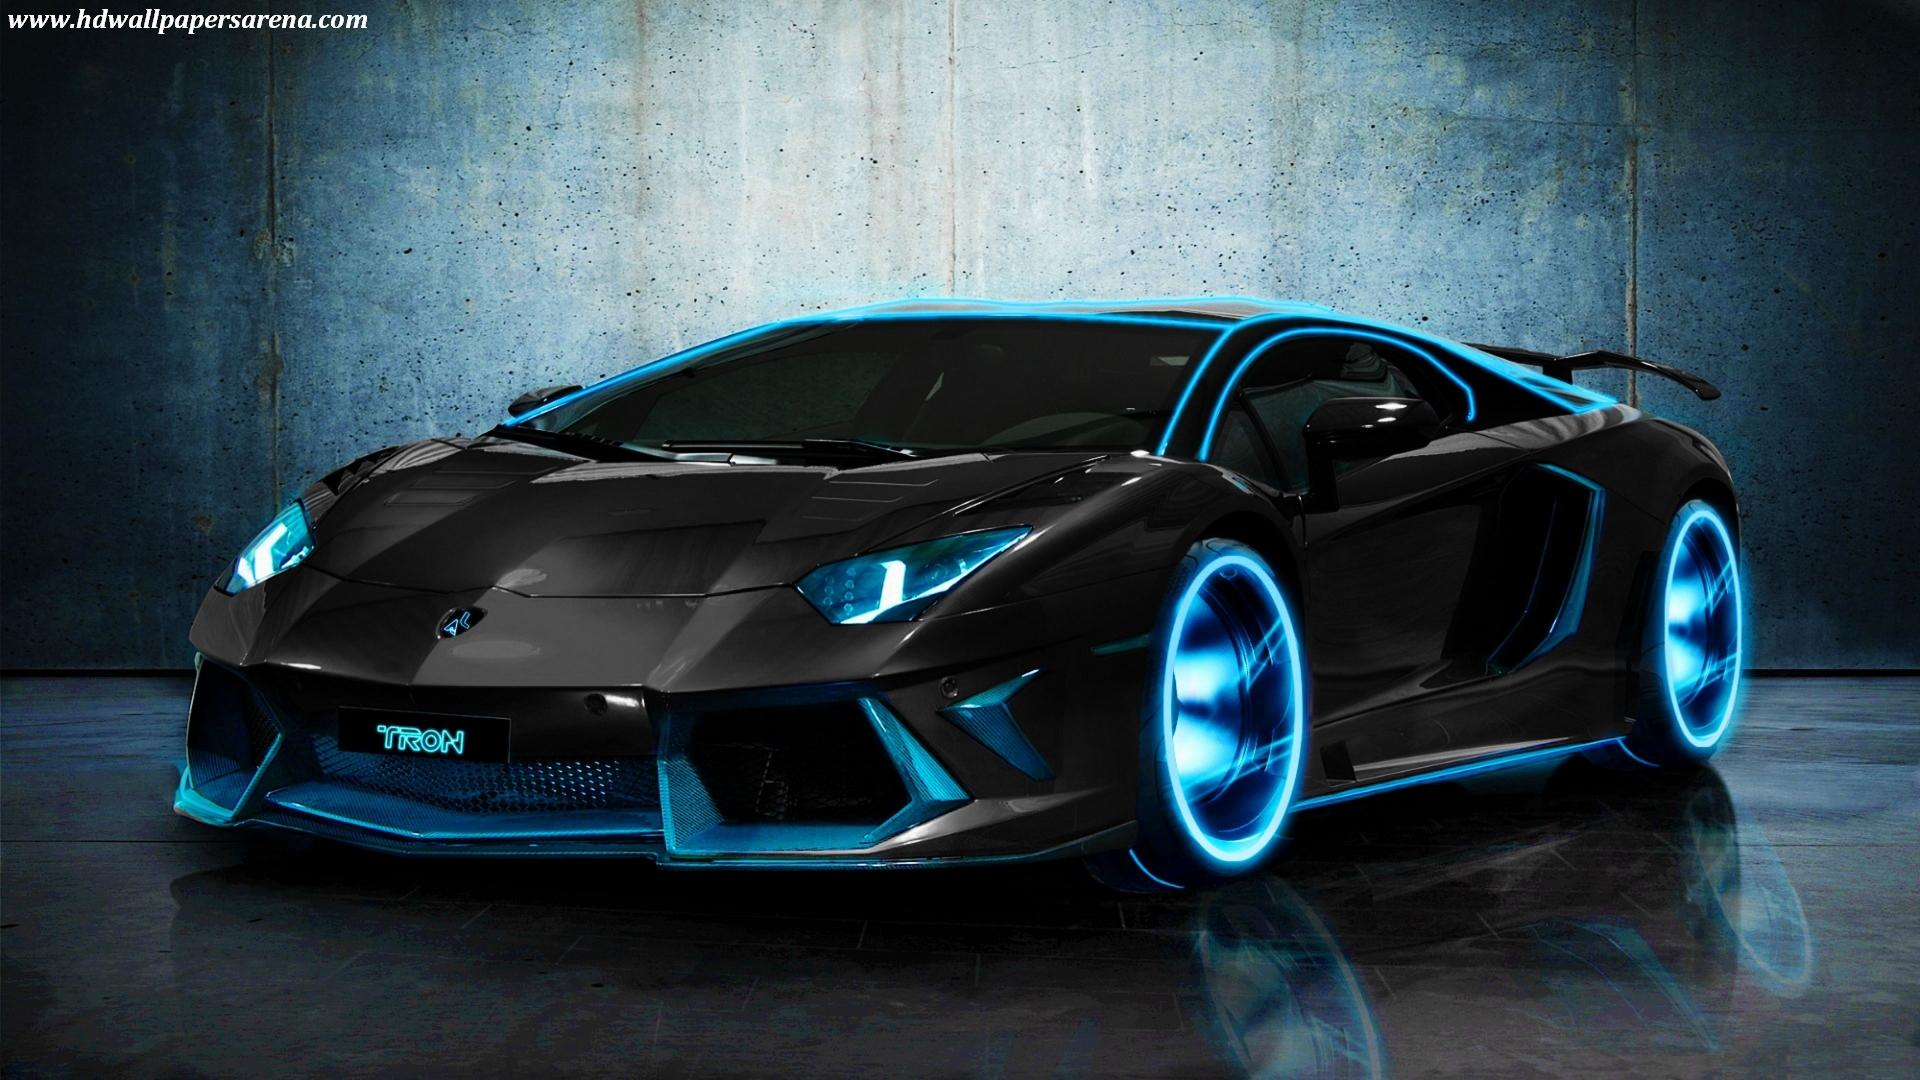 Download Wallpapers Of Lamborghini Cars